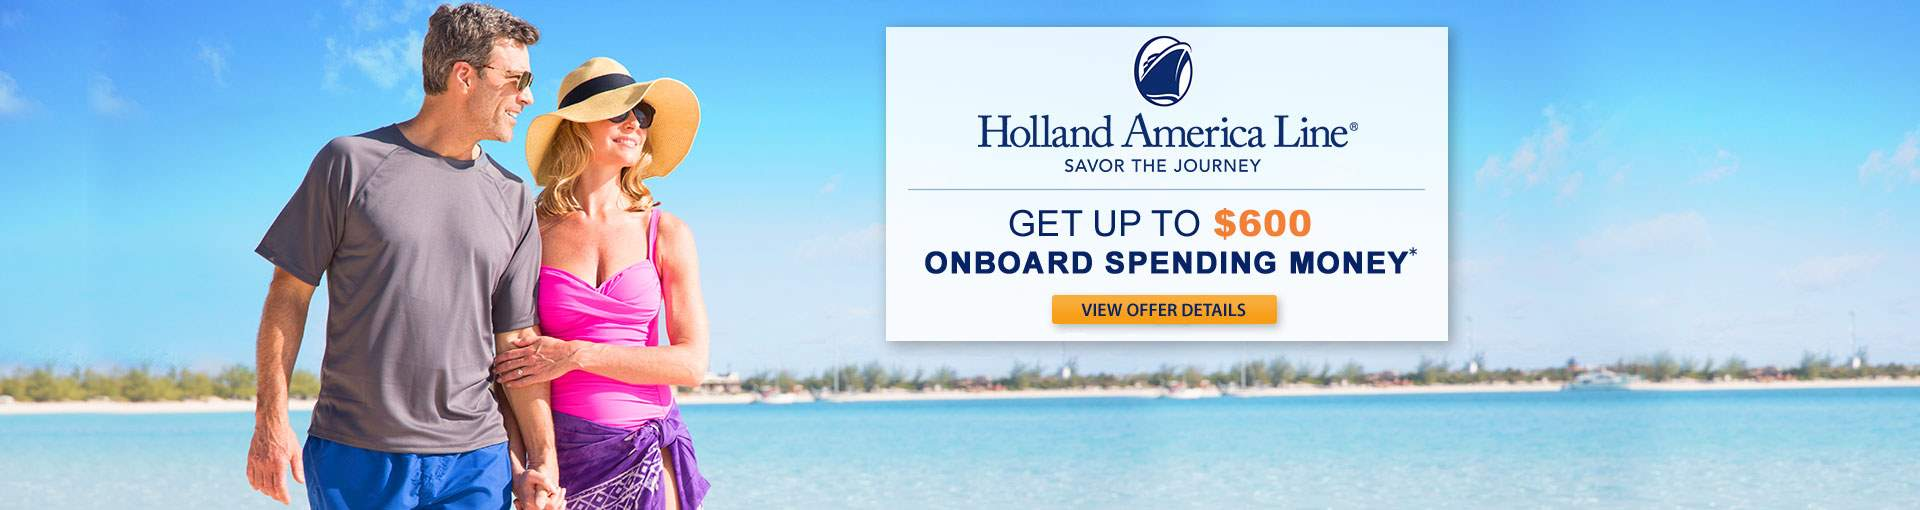 Holland America: Free Onboard Spending Money